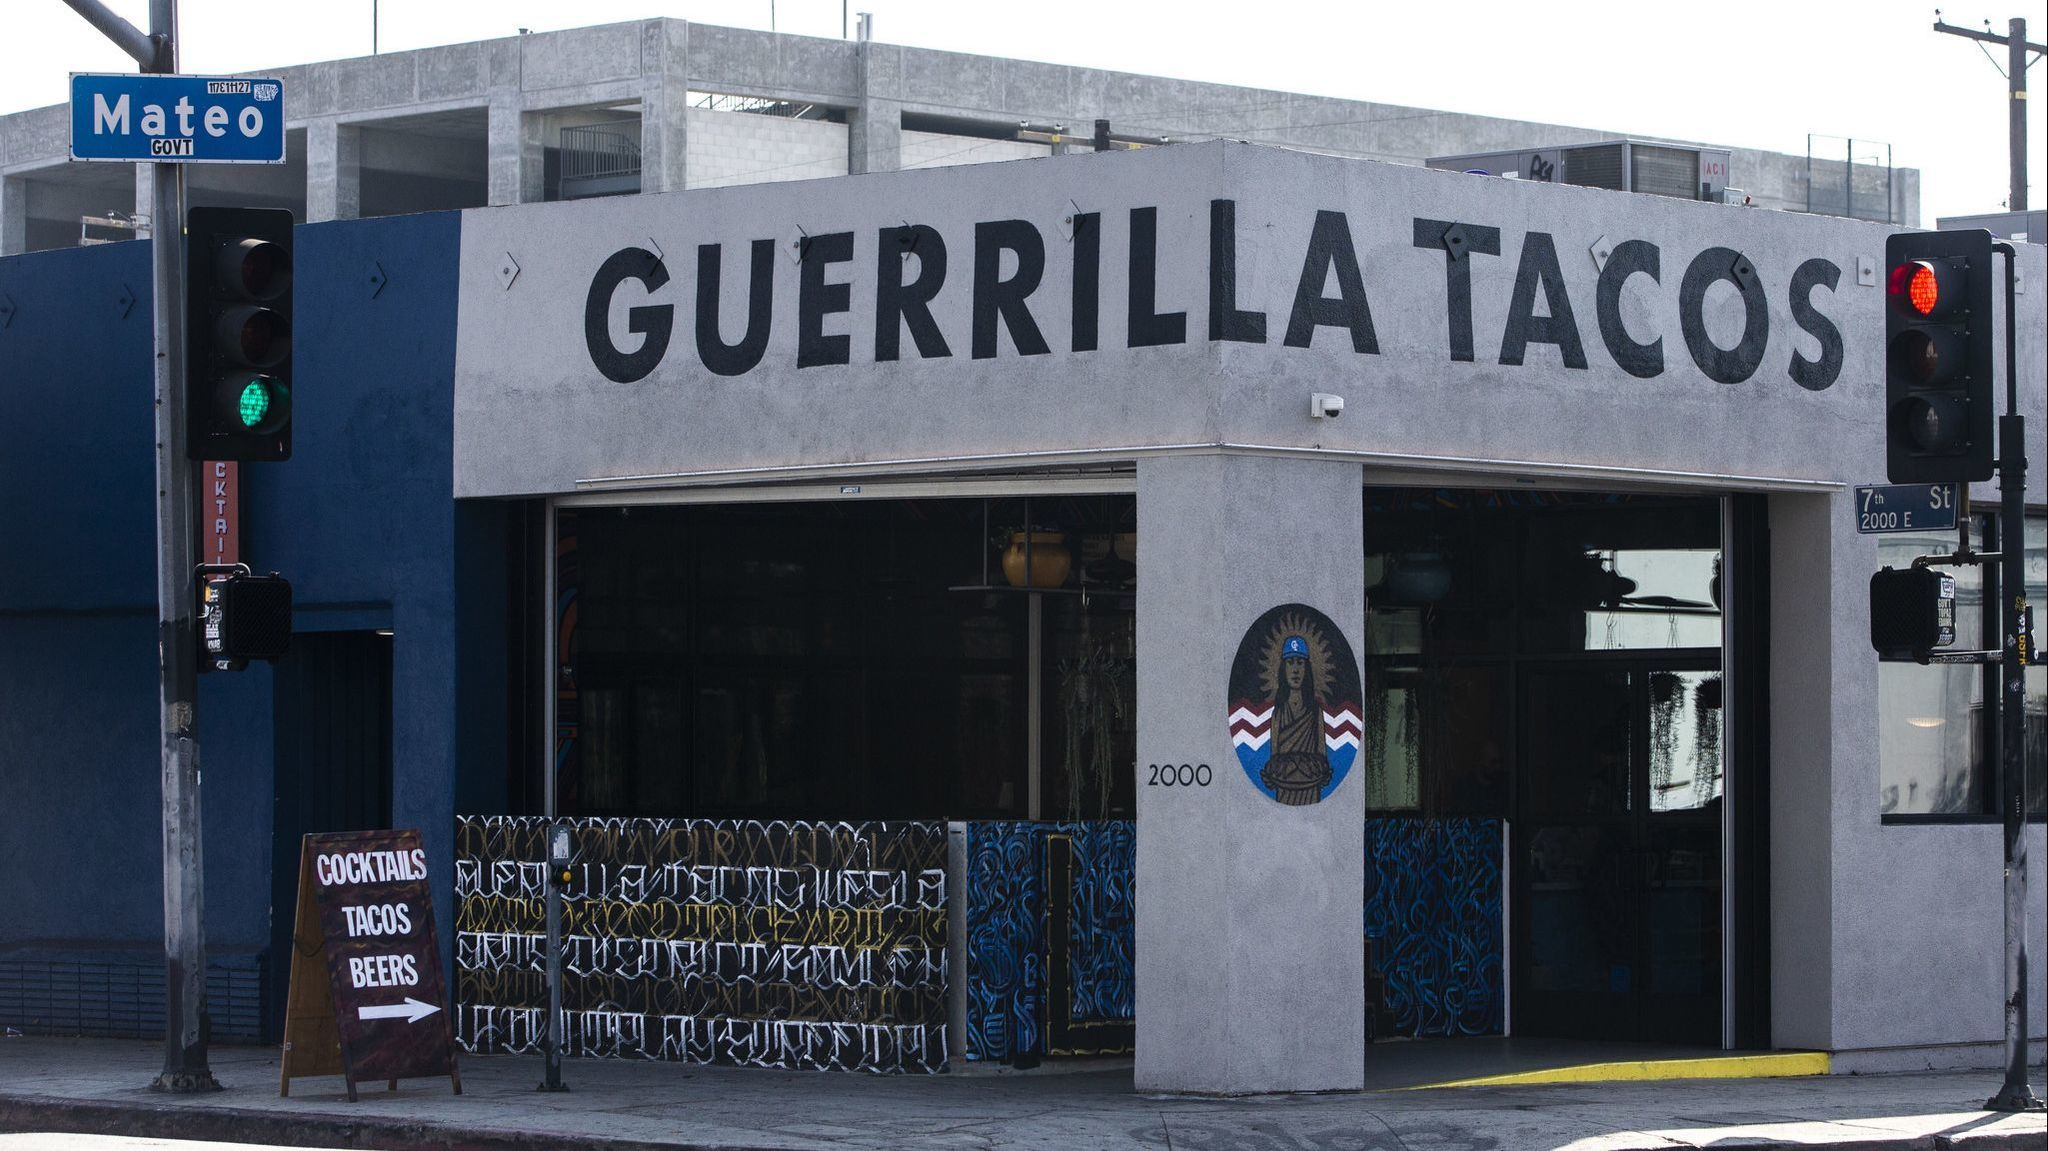 Breakfast burrito alert: Wes Avila is now making breakfast burritos at Guerrilla Tacos